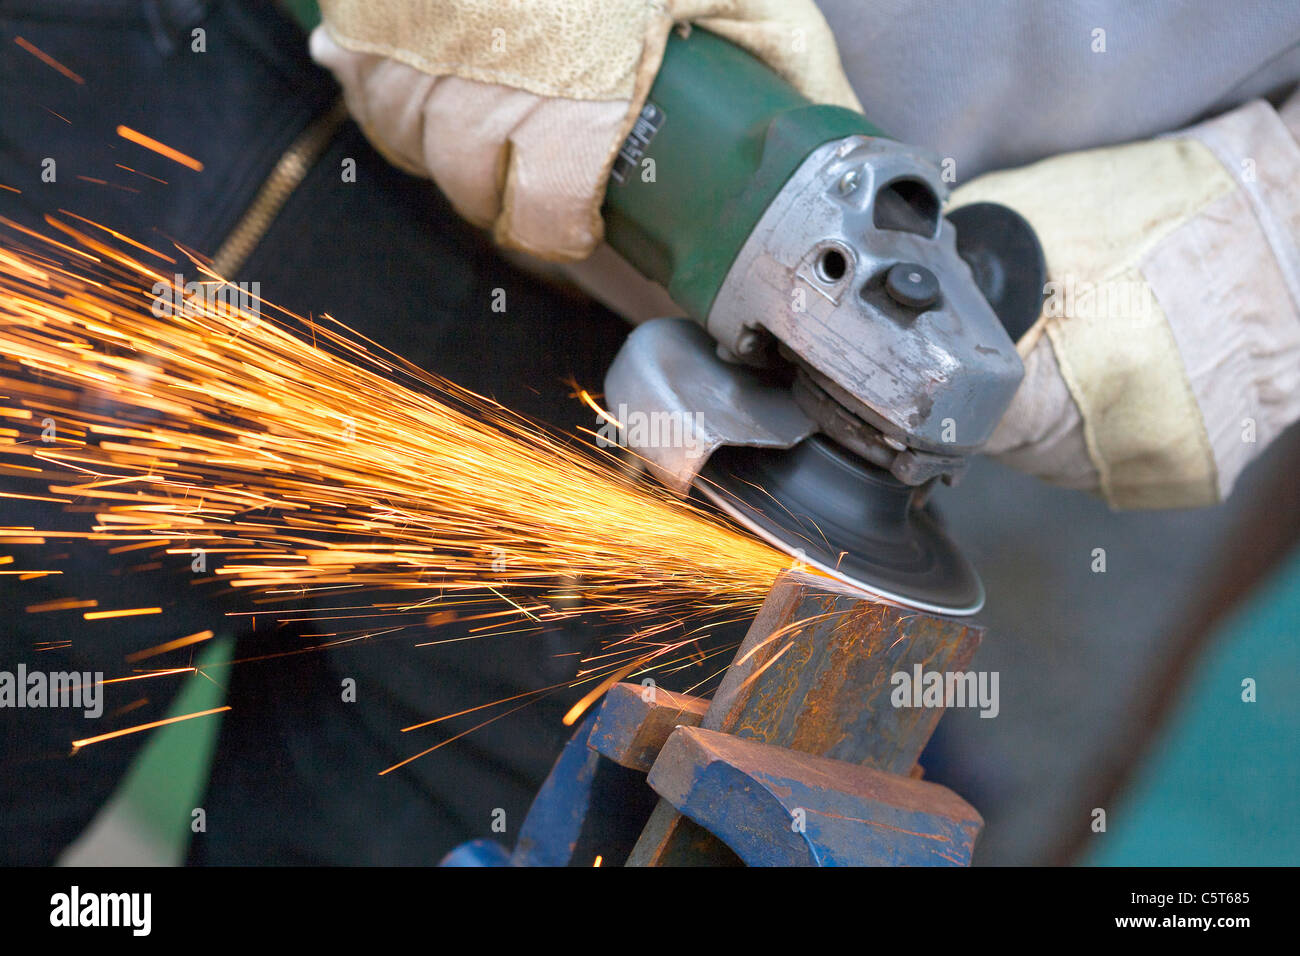 Close up of man sharpening piece of iron with angle grinder - Stock Image